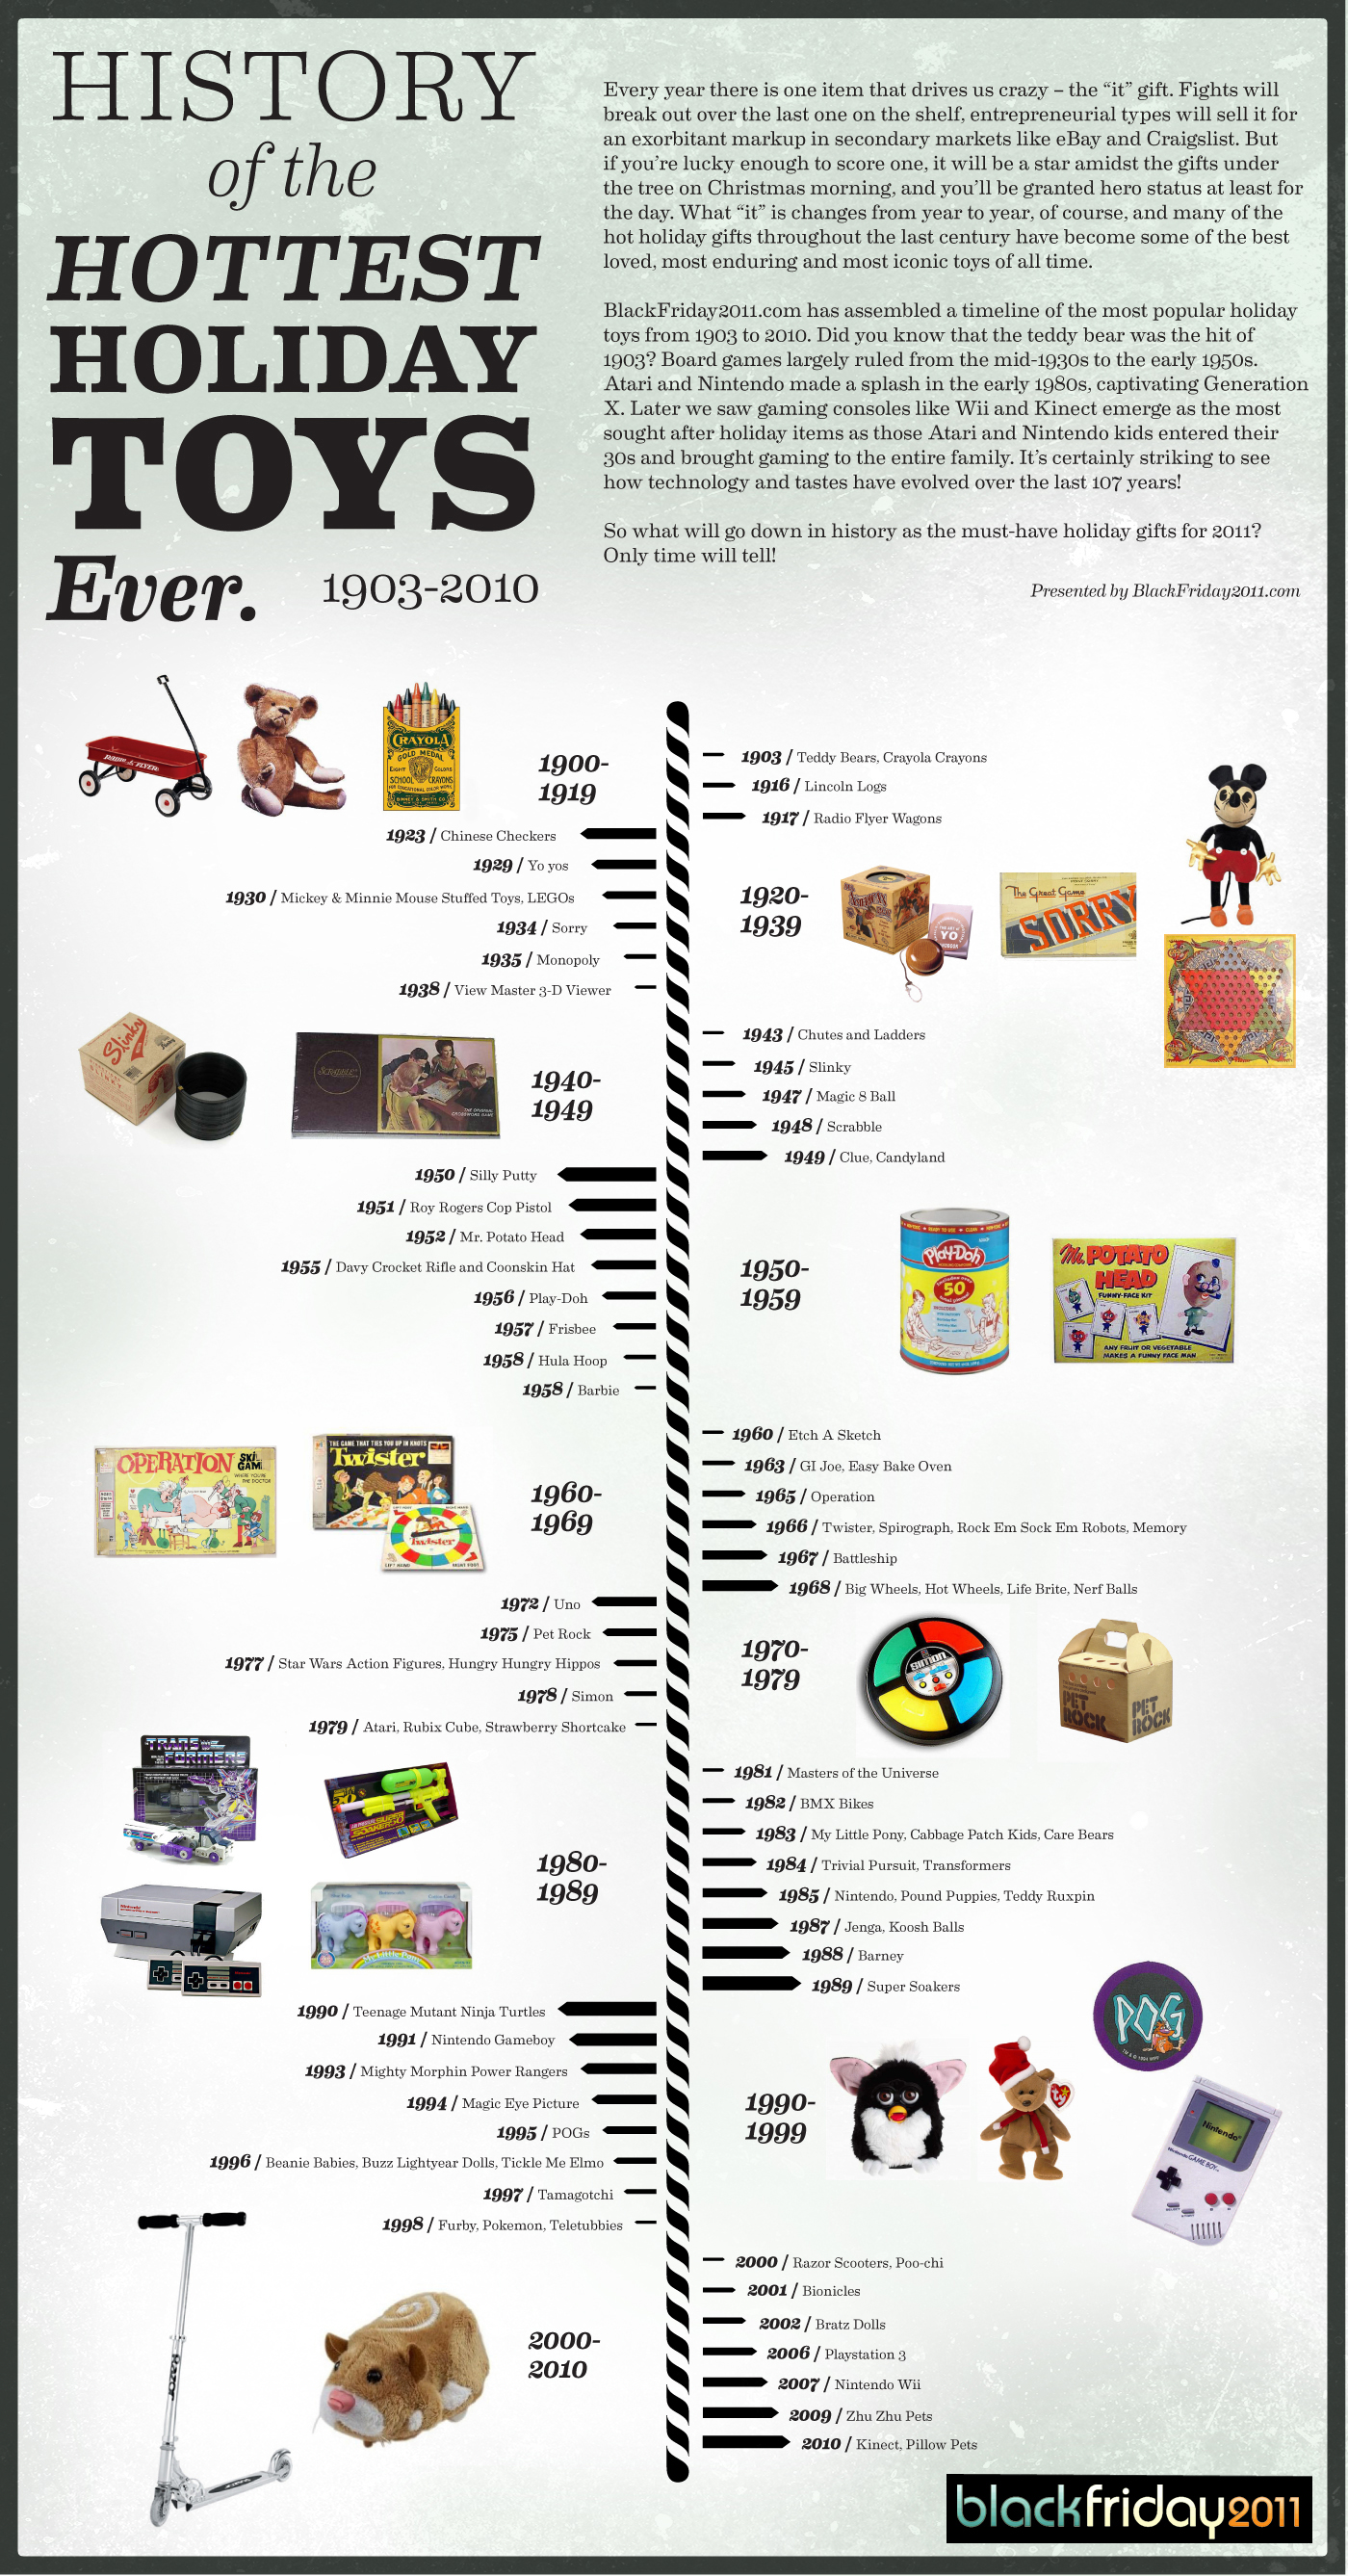 The Hottest Holiday Toys Ever Infographic